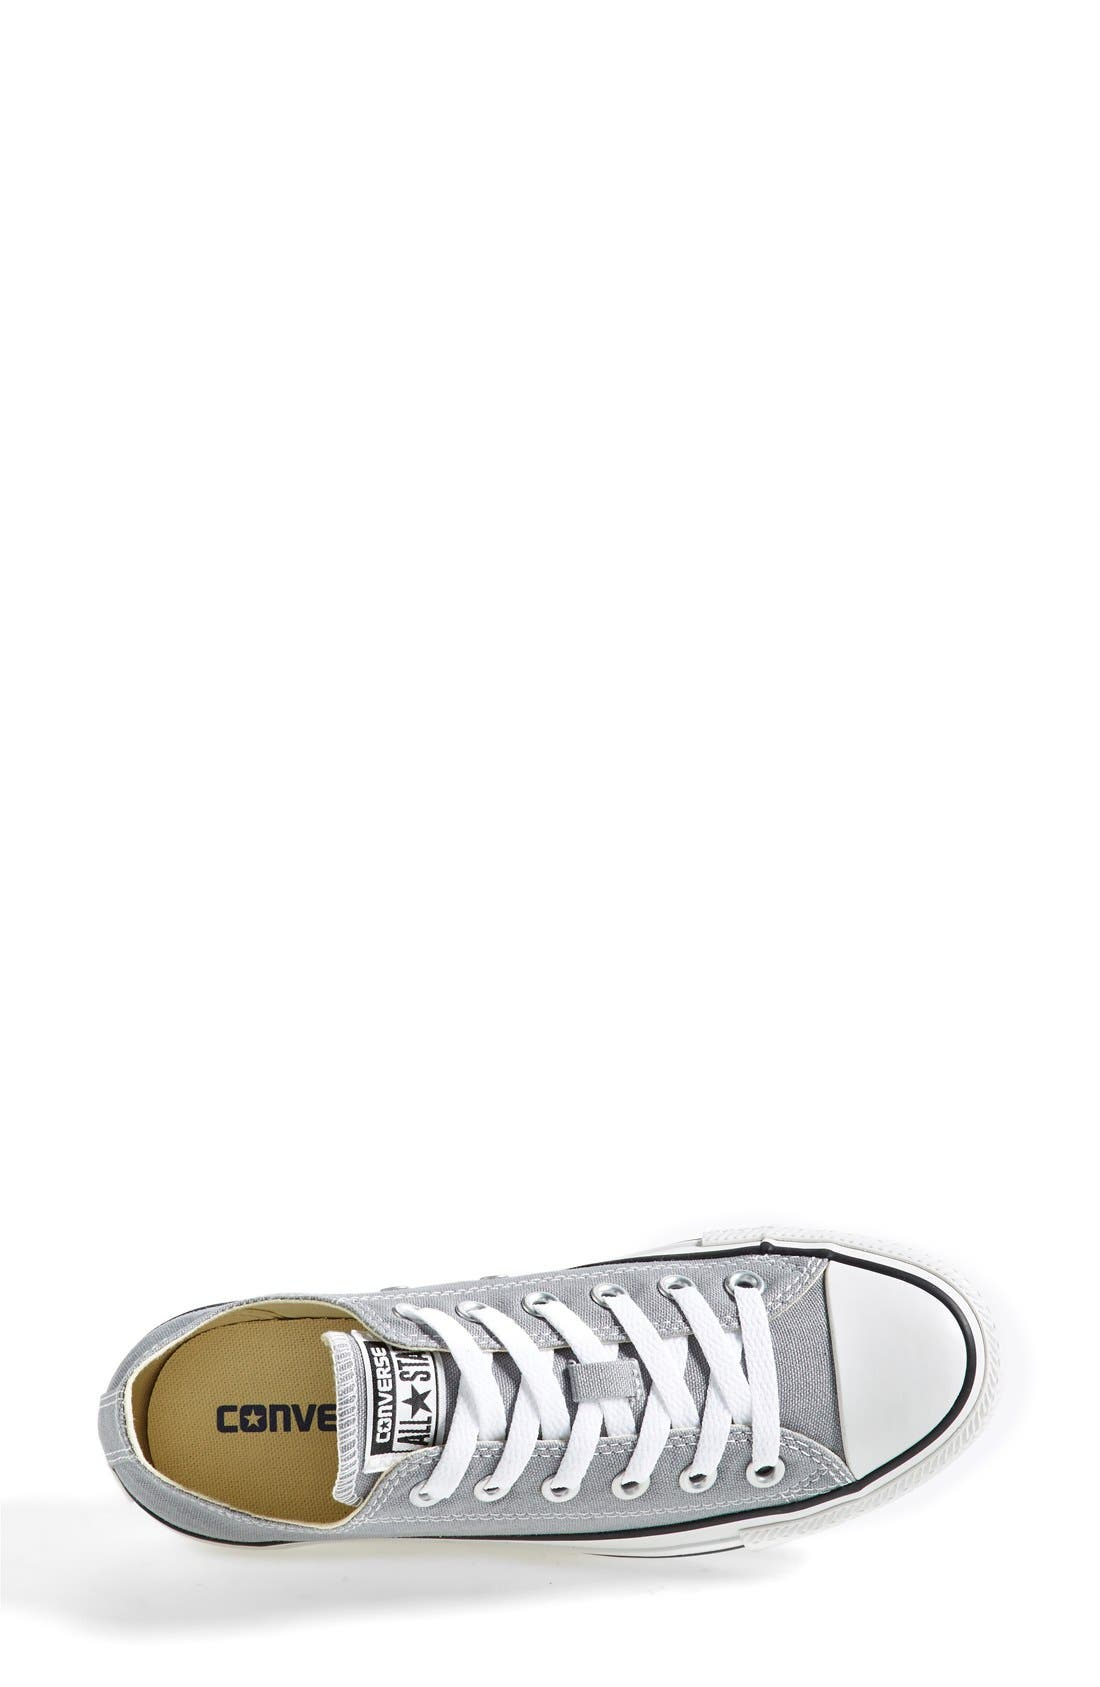 CONVERSE,                             Chuck Taylor<sup>®</sup> All Star<sup>®</sup> Sneaker,                             Alternate thumbnail 4, color,                             020